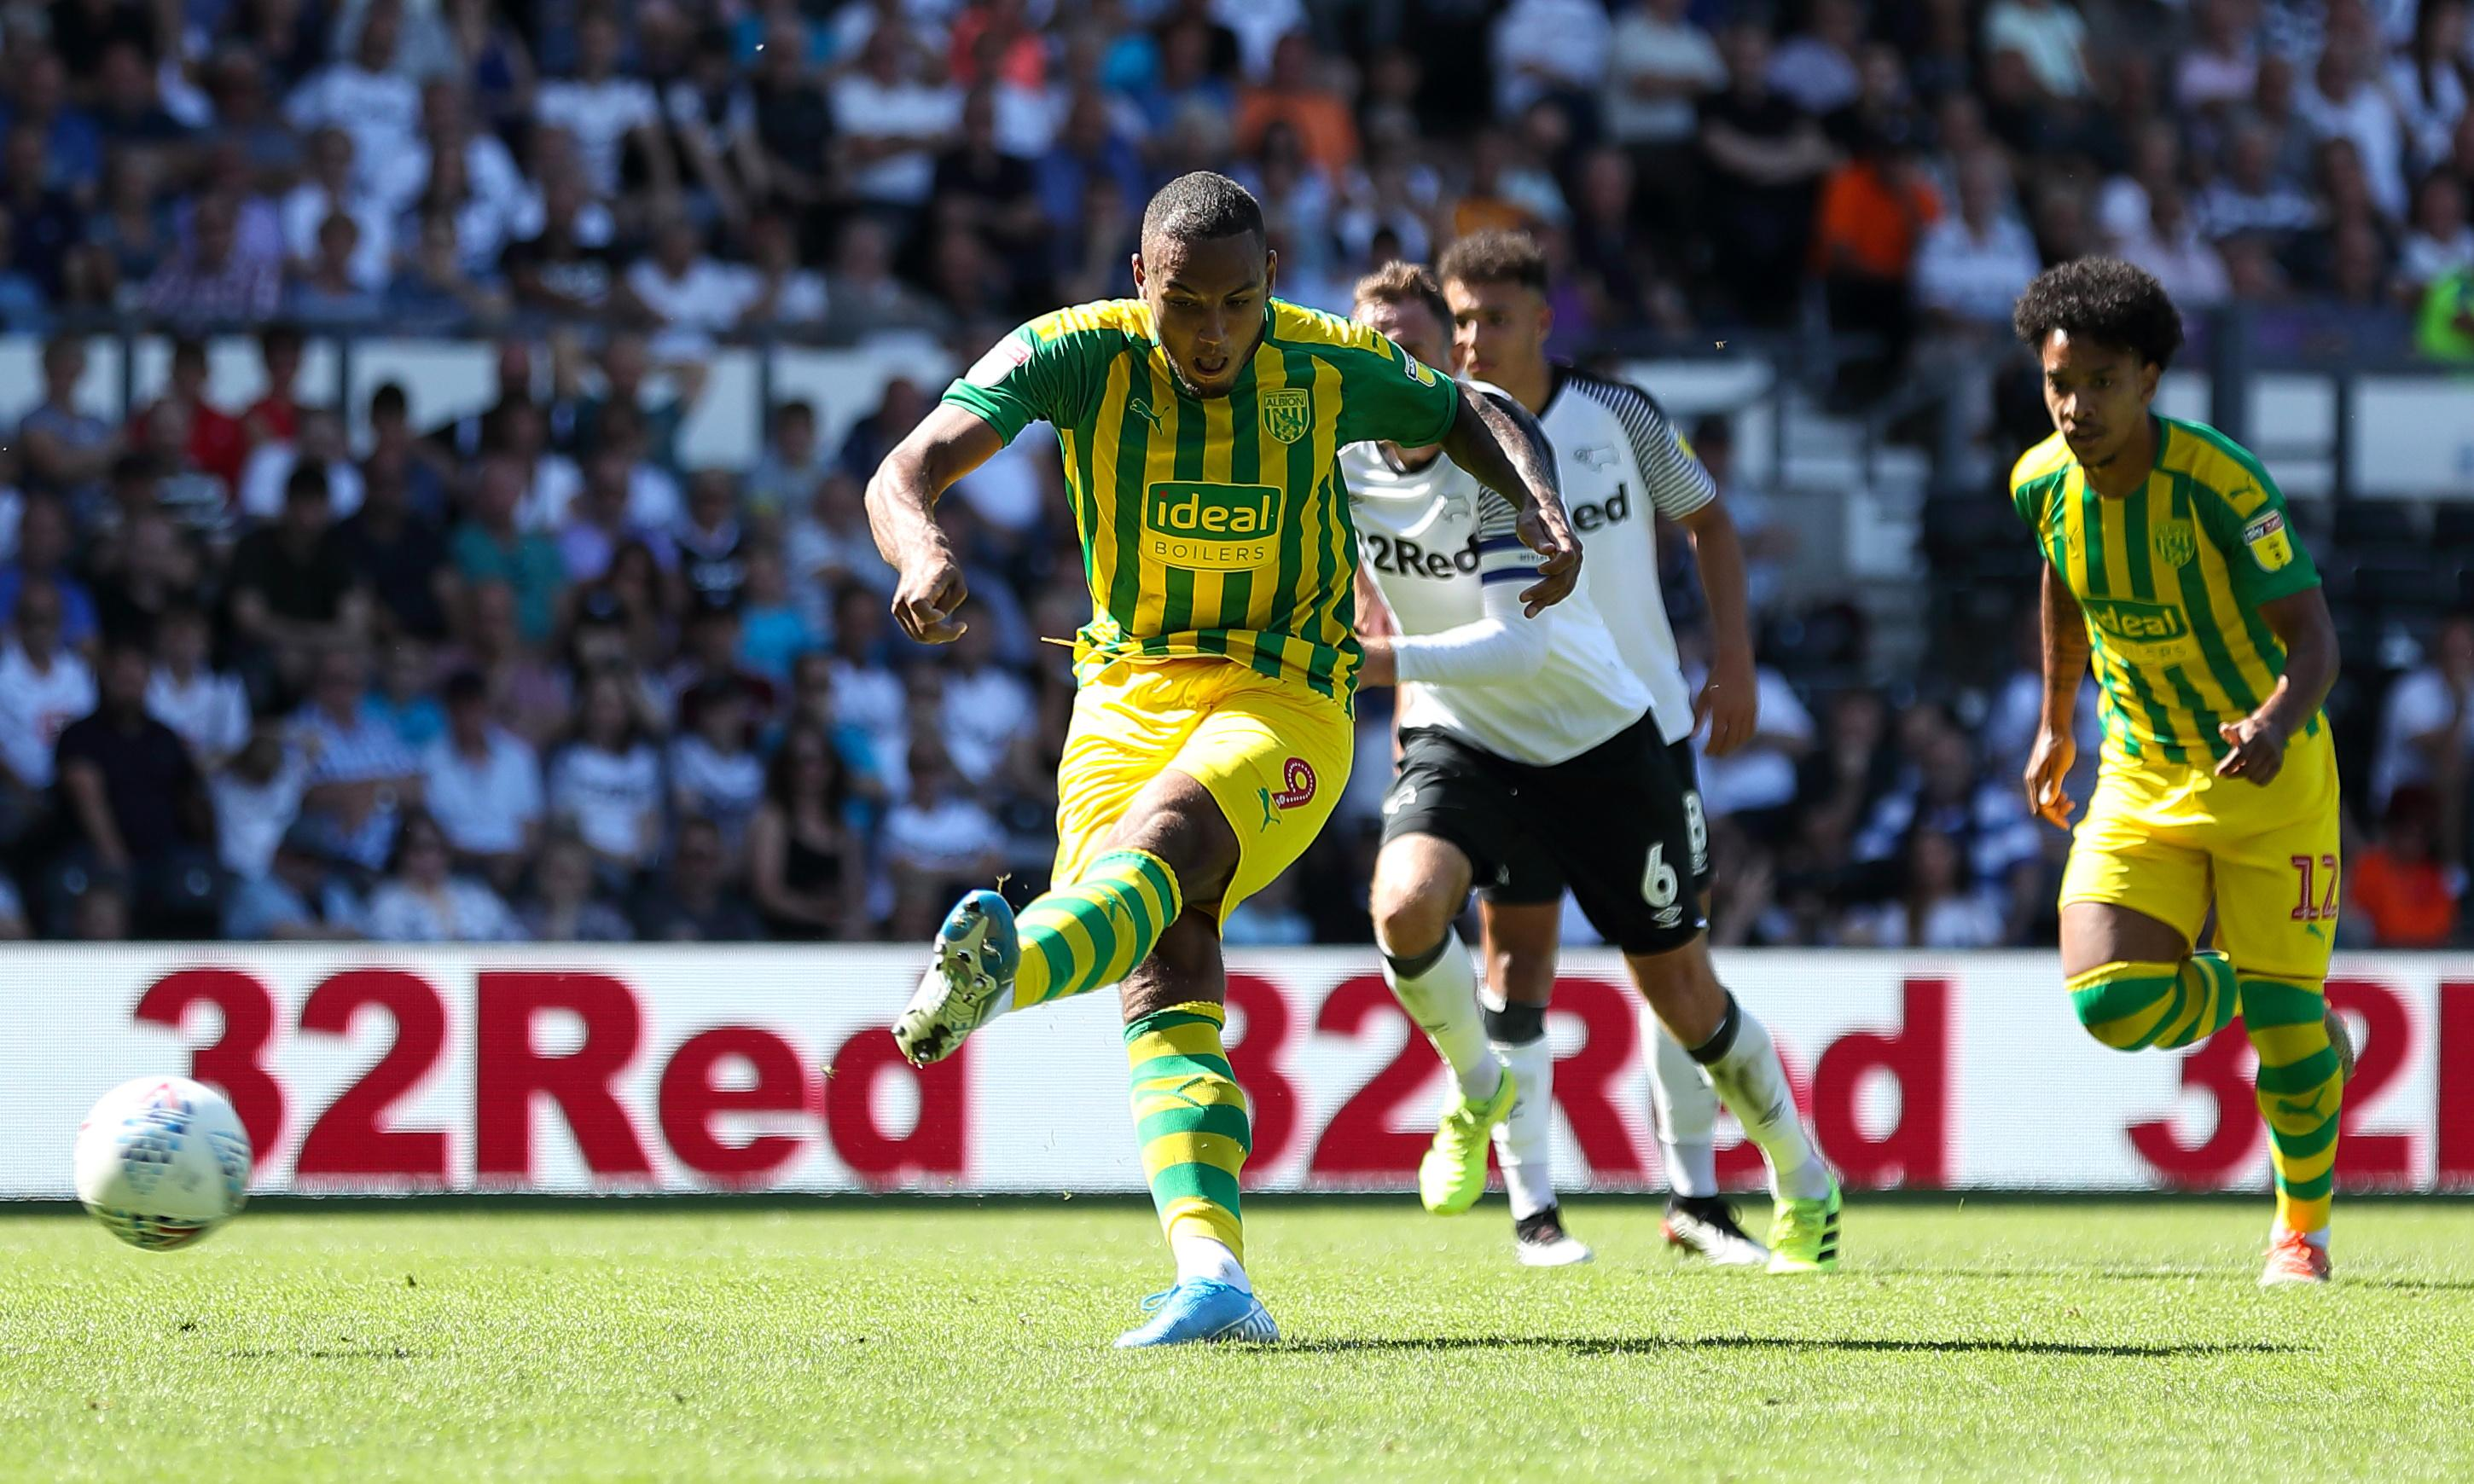 Kenneth Zohore's late penalty at Derby preserves West Brom's unbeaten start